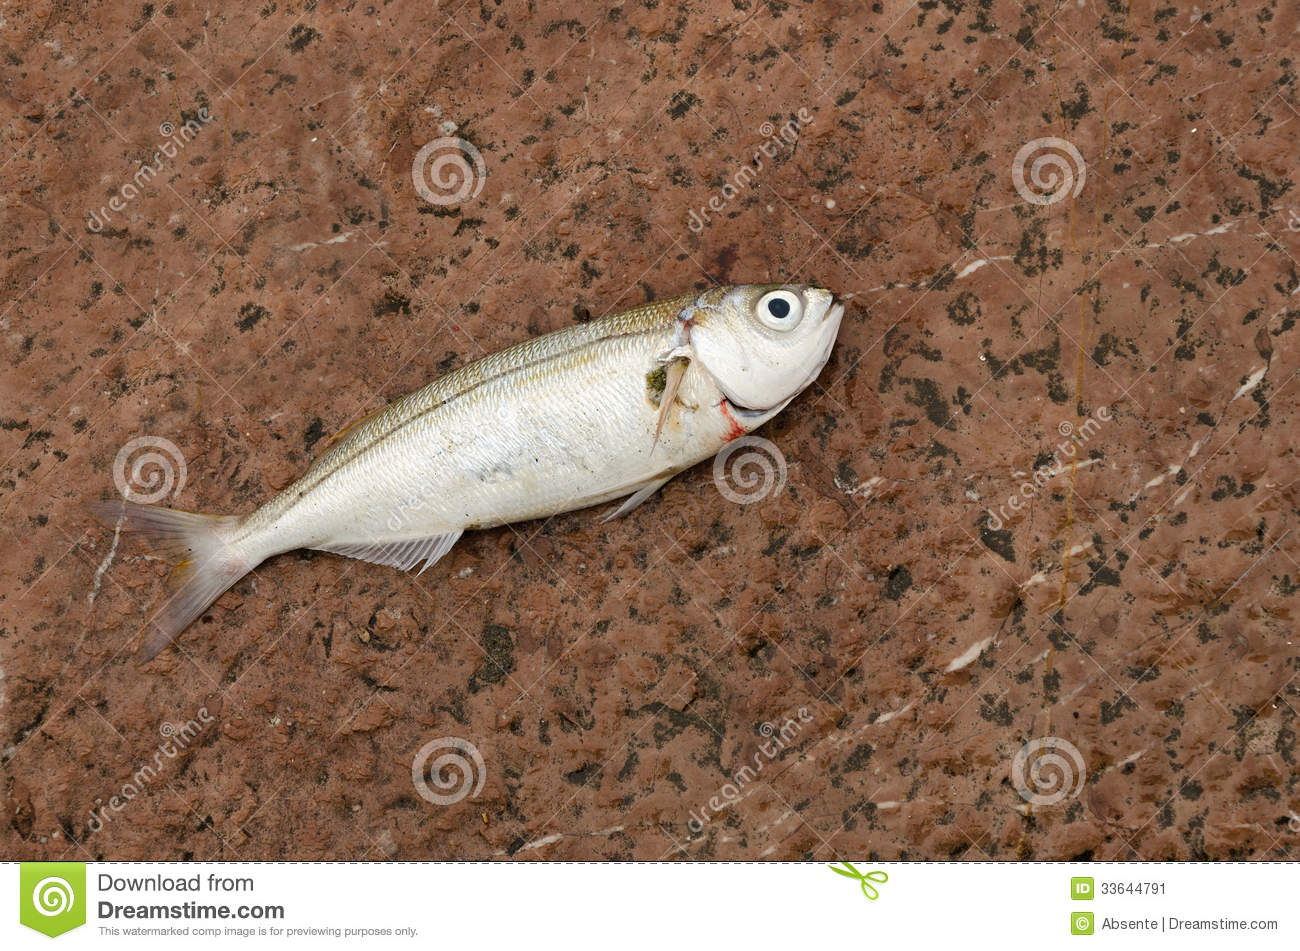 Fish out of water stock image image 33644791 for Dream about fish out of water